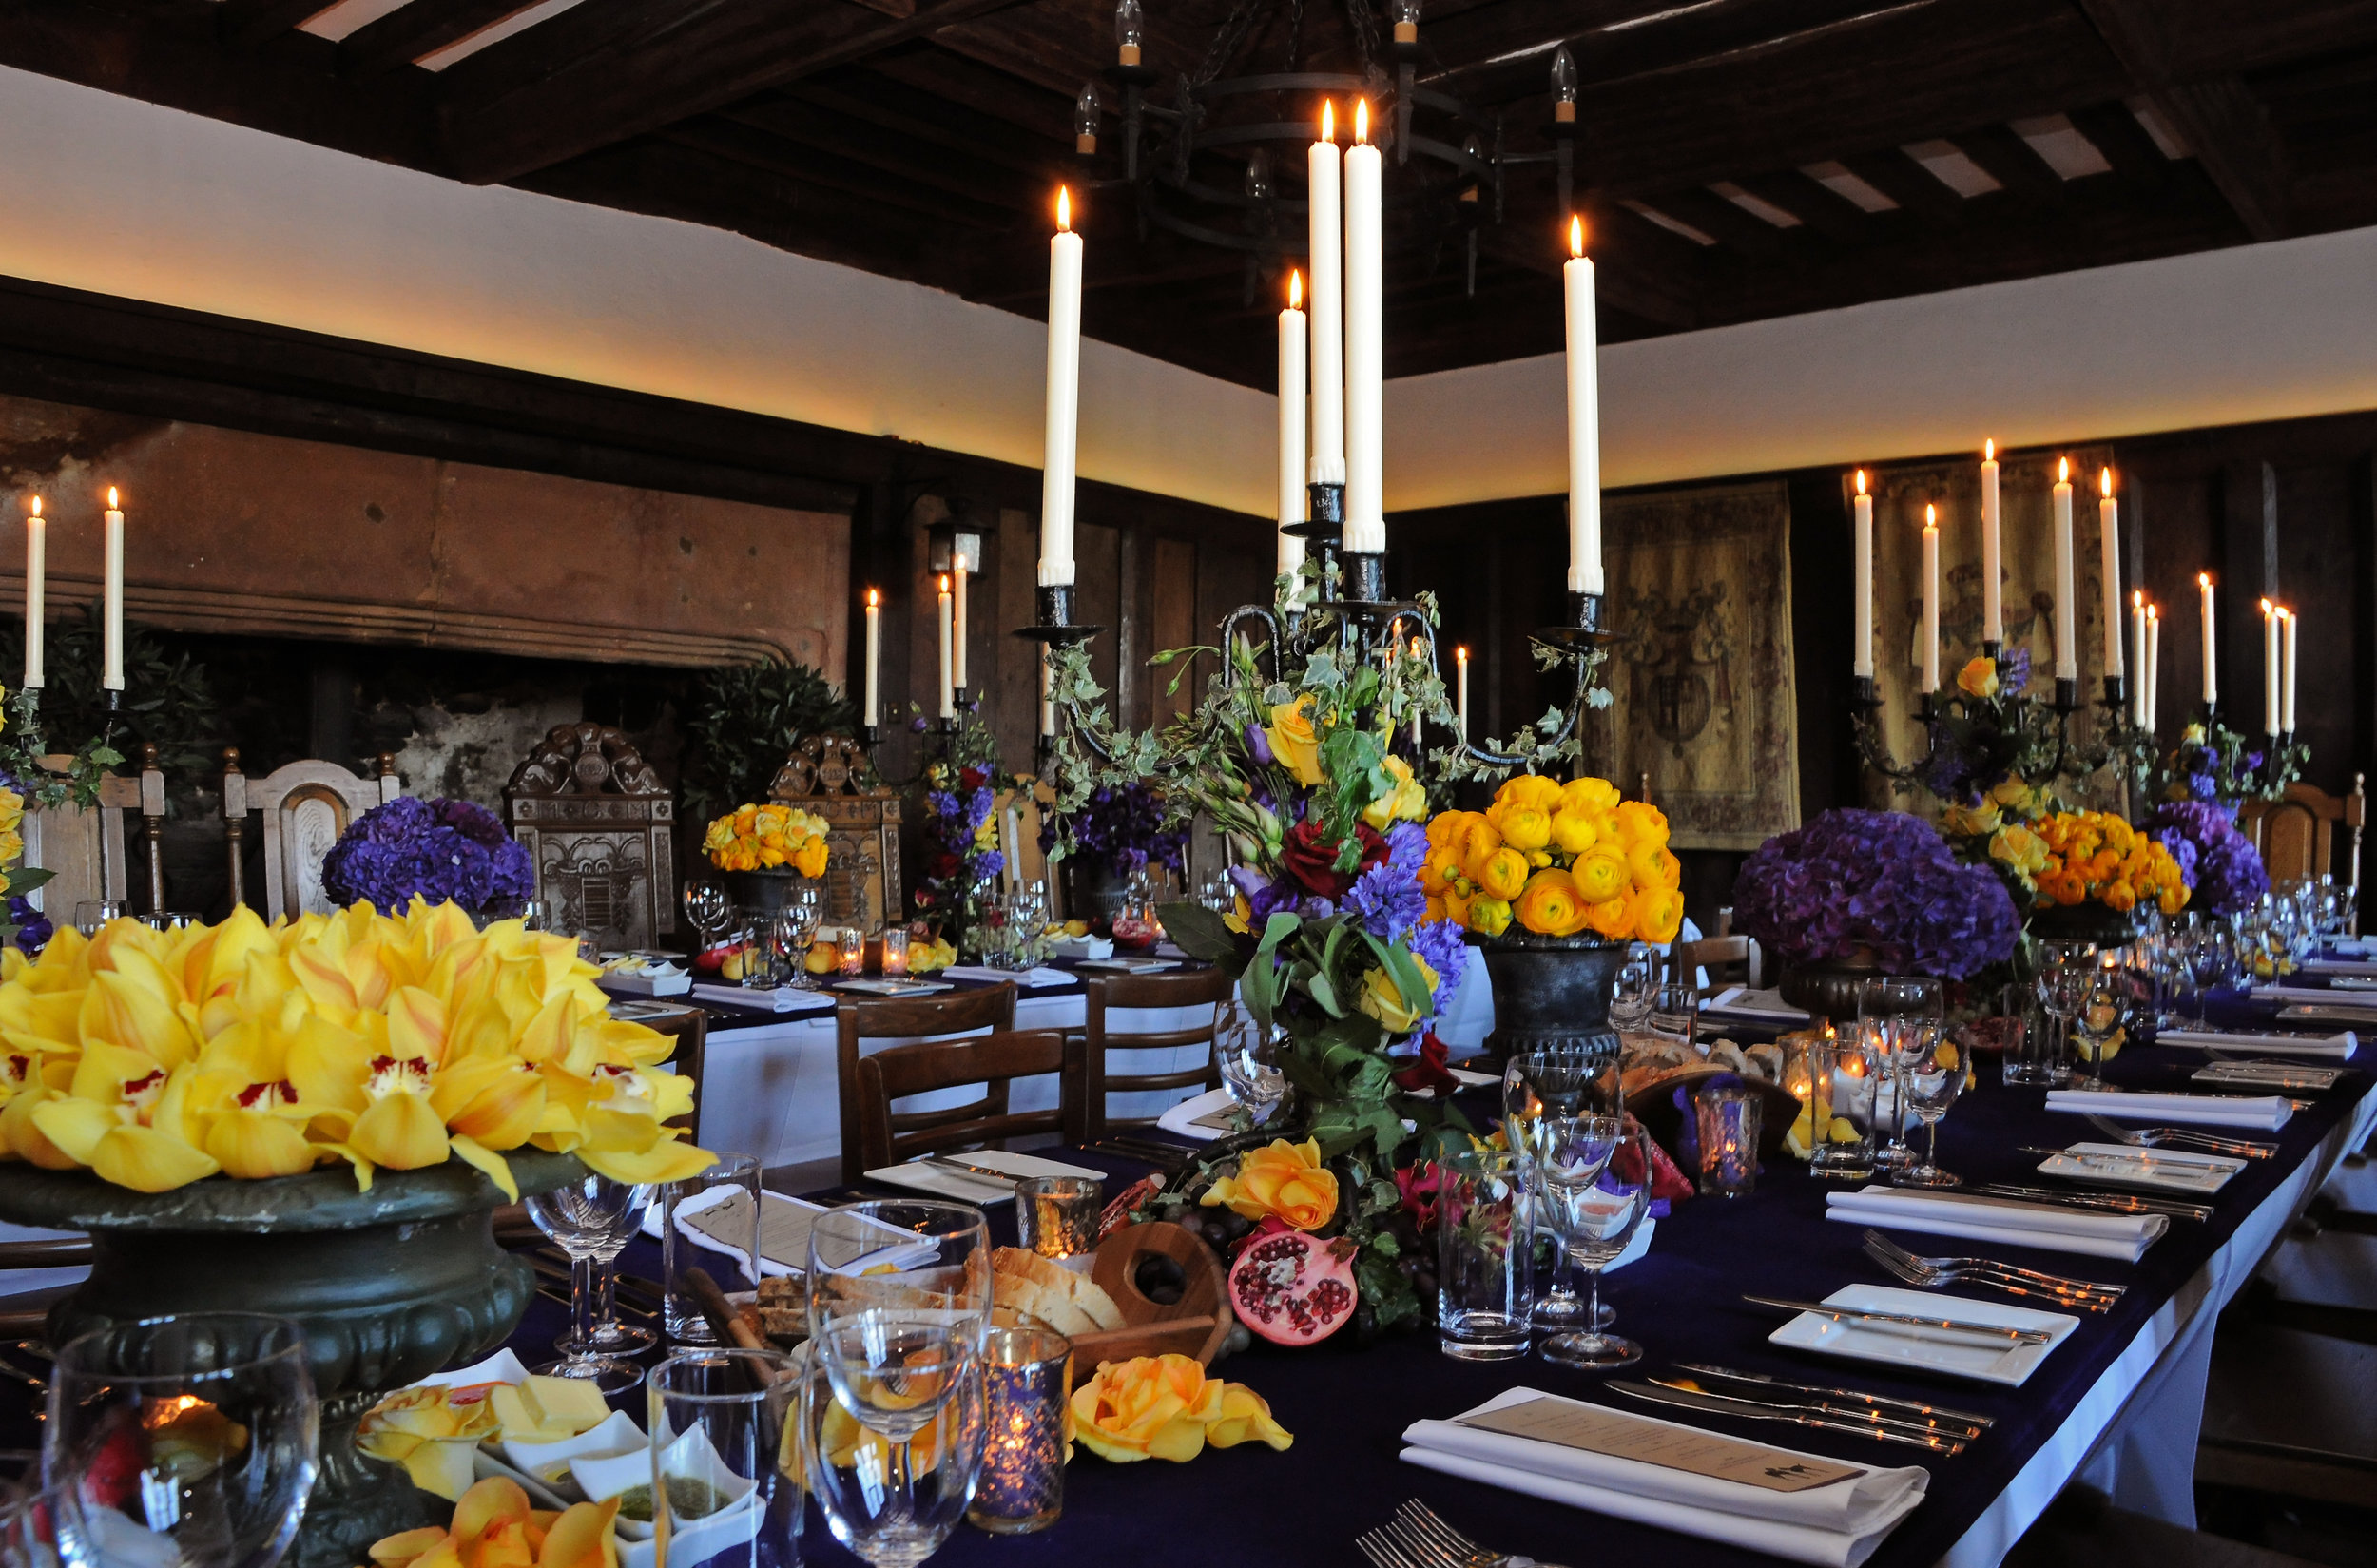 Banqueting Hall - flowers,candles.JPG